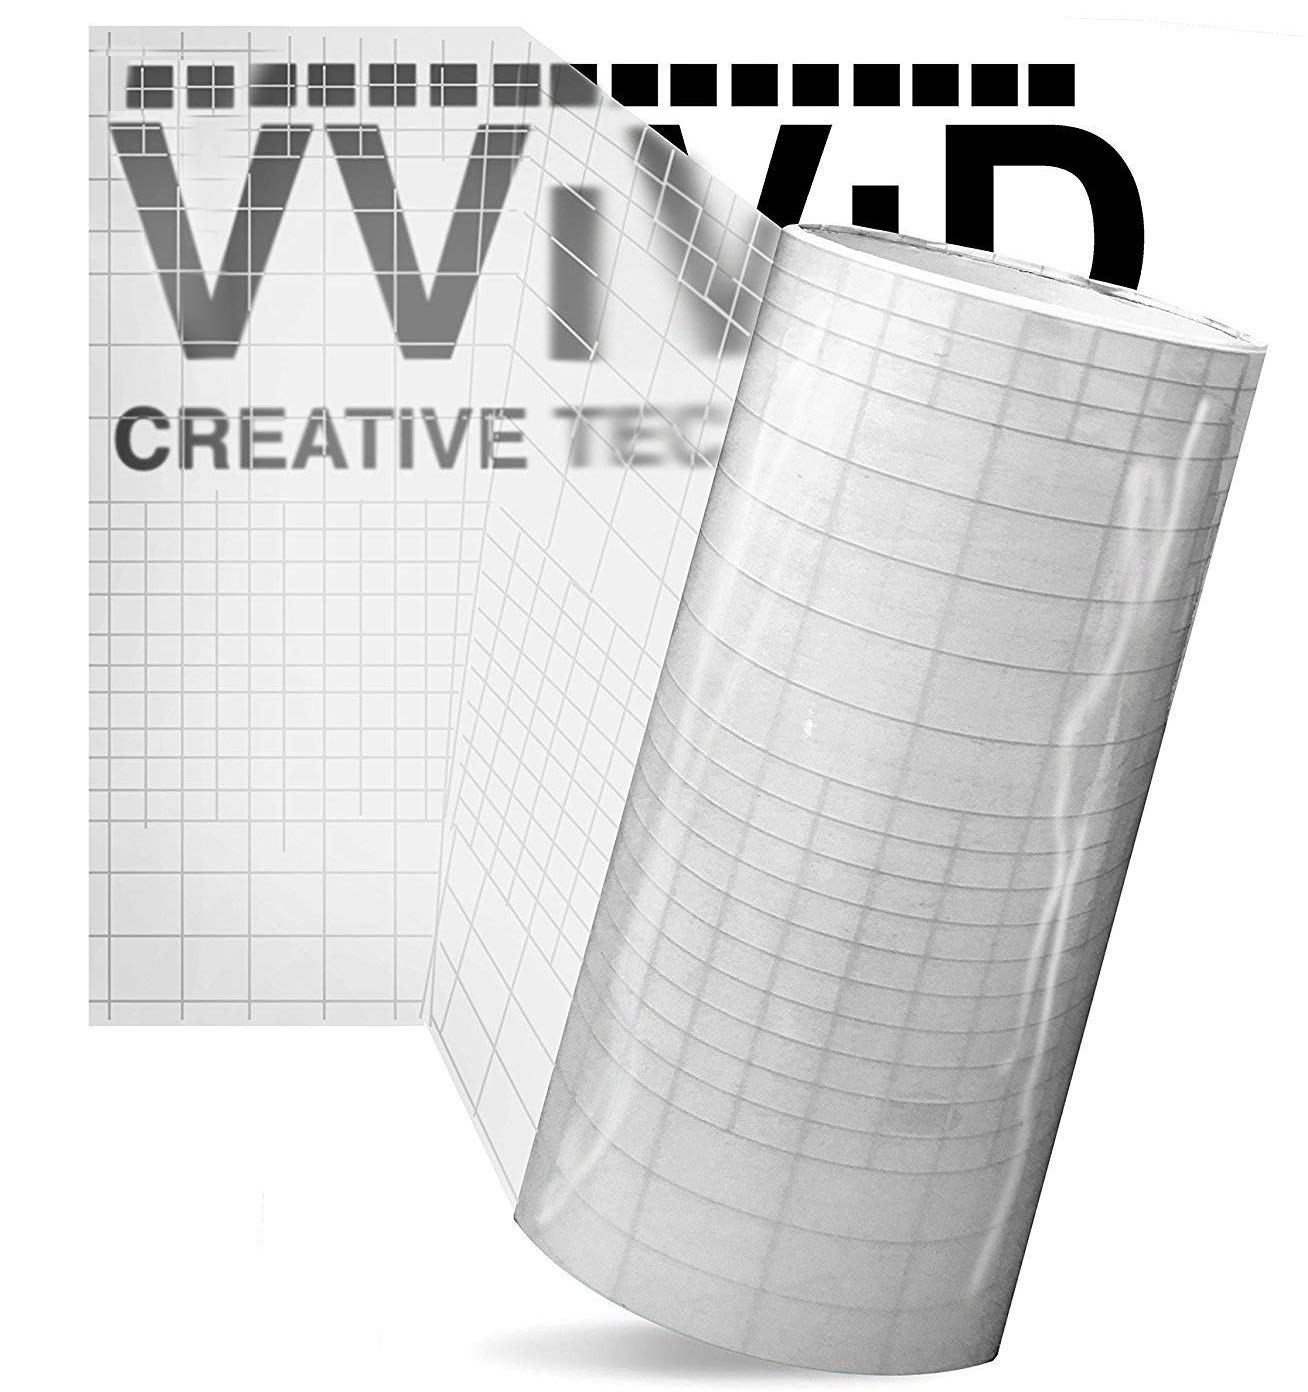 High Gloss Clear Vinyl Transfer Paper Self-Adhesive 12'' x 10ft Roll w/Grid Backing 3mil (10 rolls) by VViViD